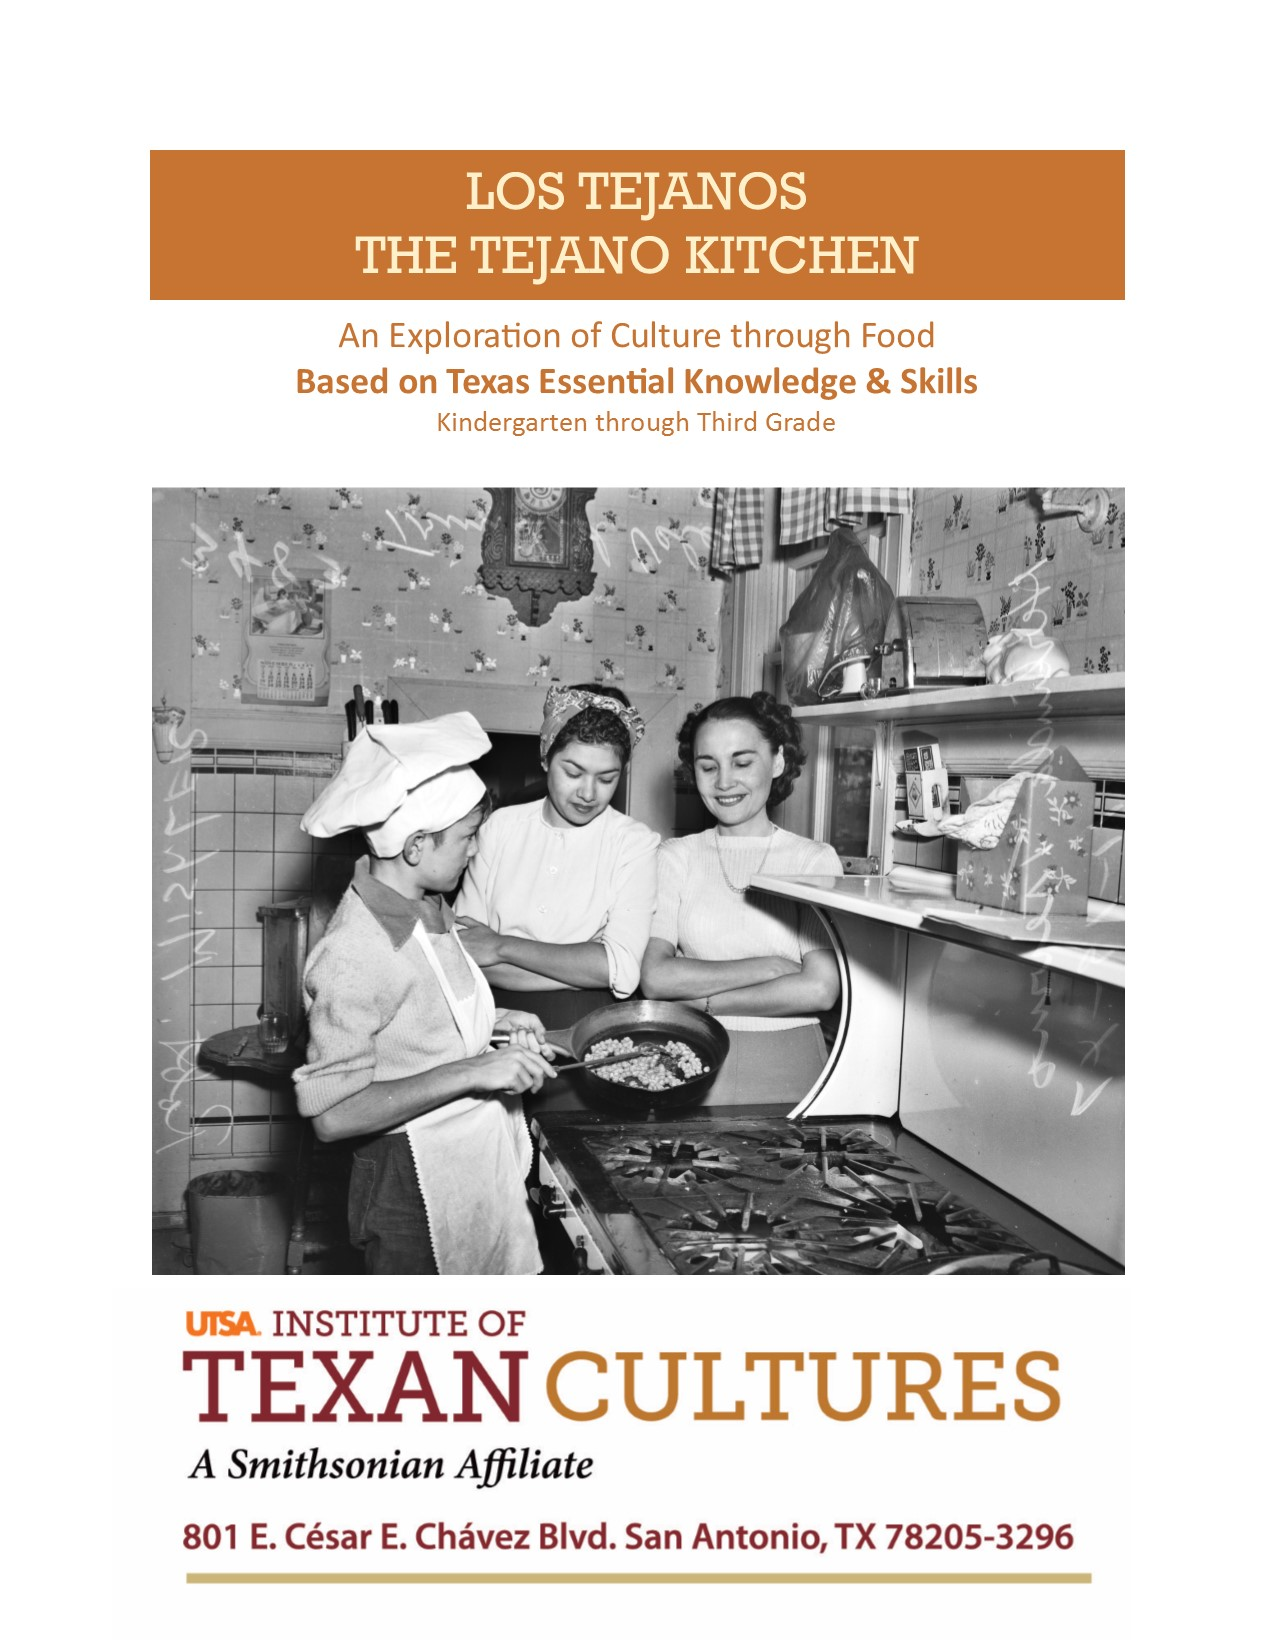 The Tejano Kitchen: An Exploration of Culture Through Food | UTSA Institute Of Texan Cultures